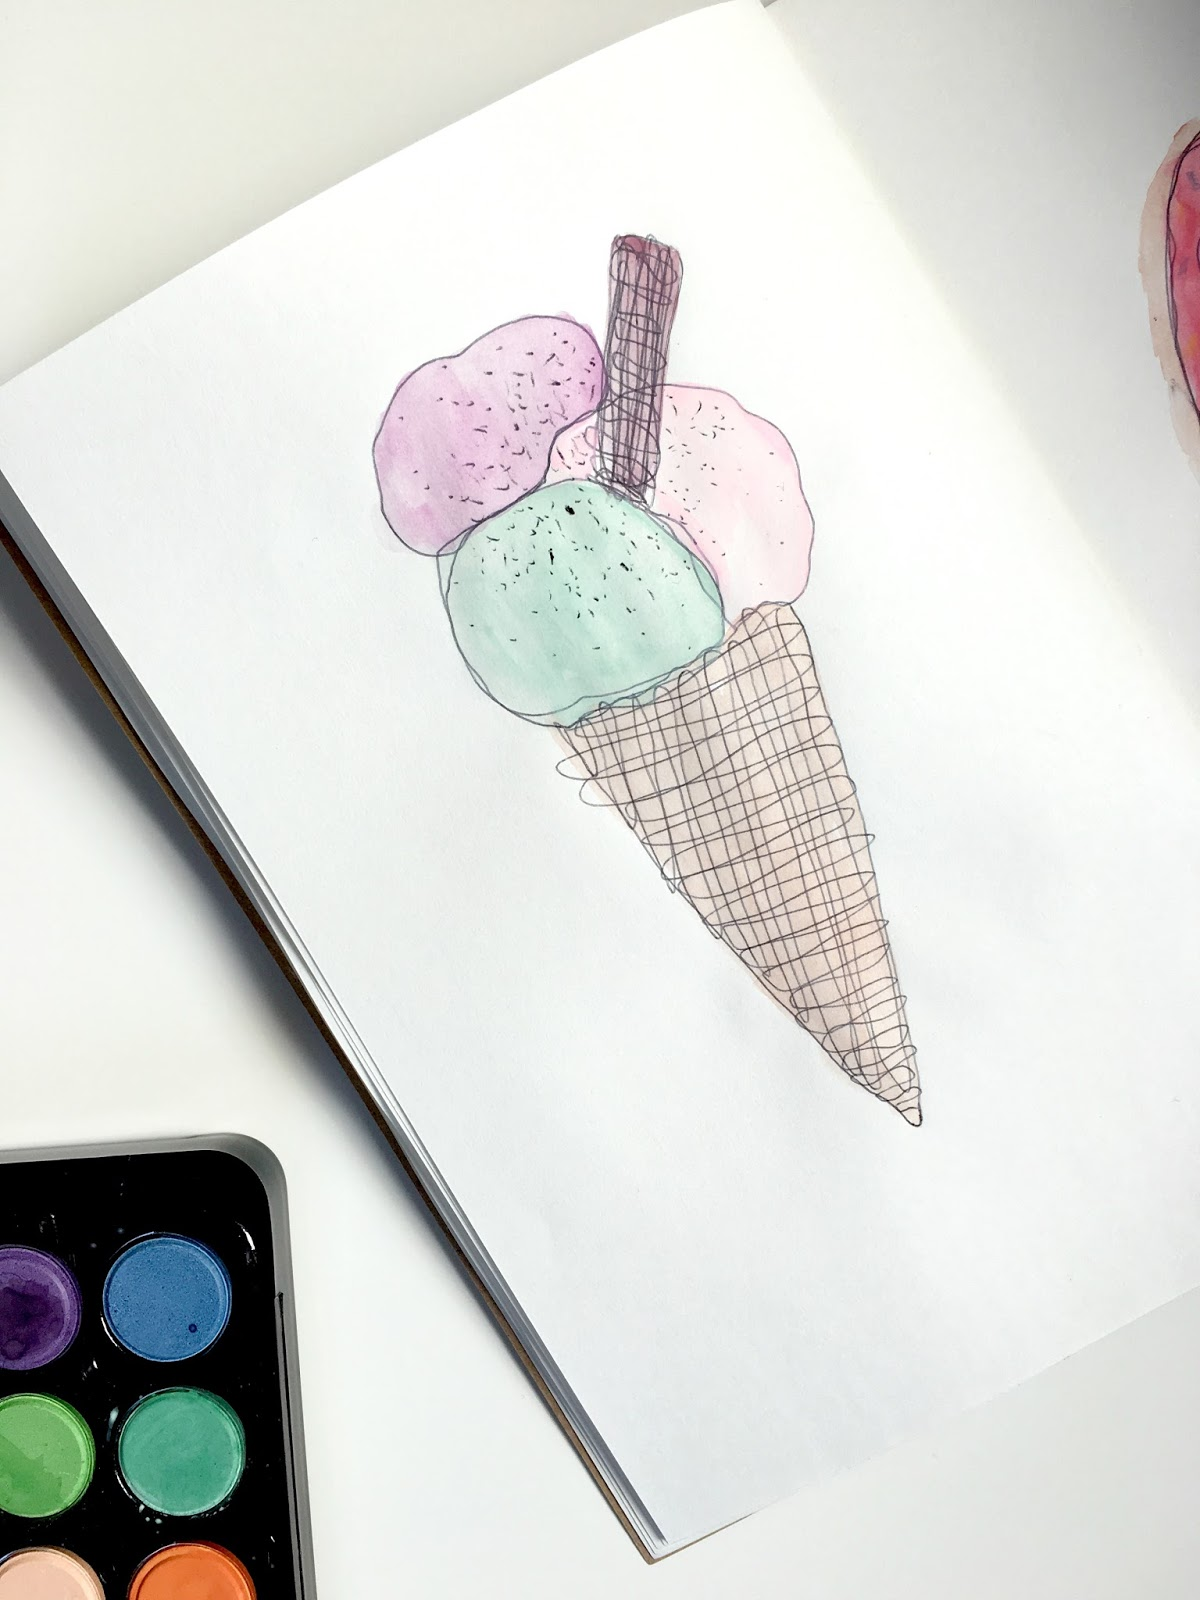 Sweet Allure I Decided To Start An Art Journal creative sketchs drawing watercolours painting doodles icecream cone icecreamcone fun hobby